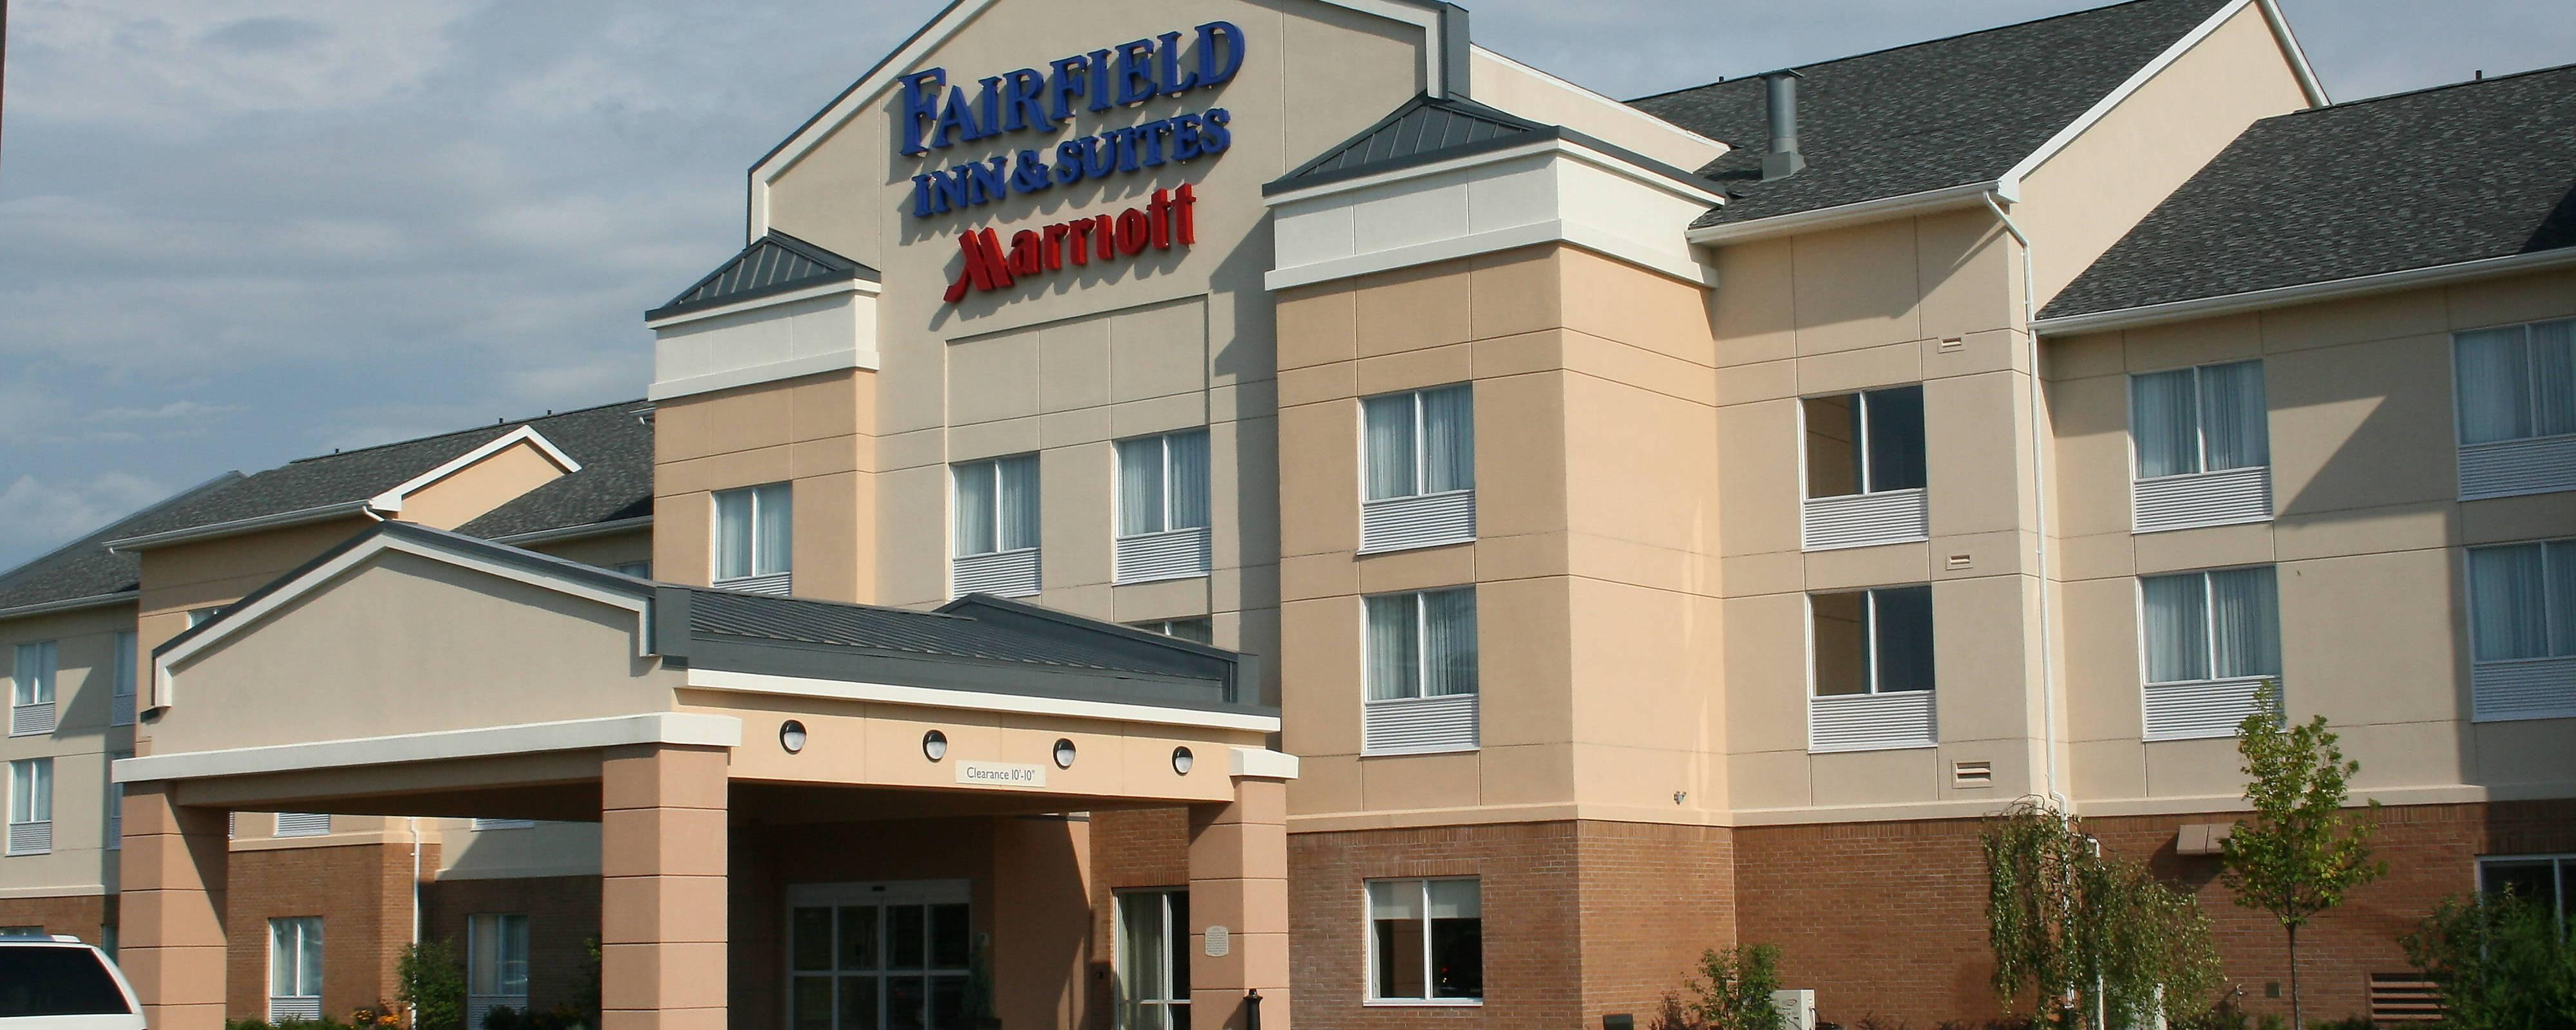 Fairfield Inn & Suites By Marriott logo